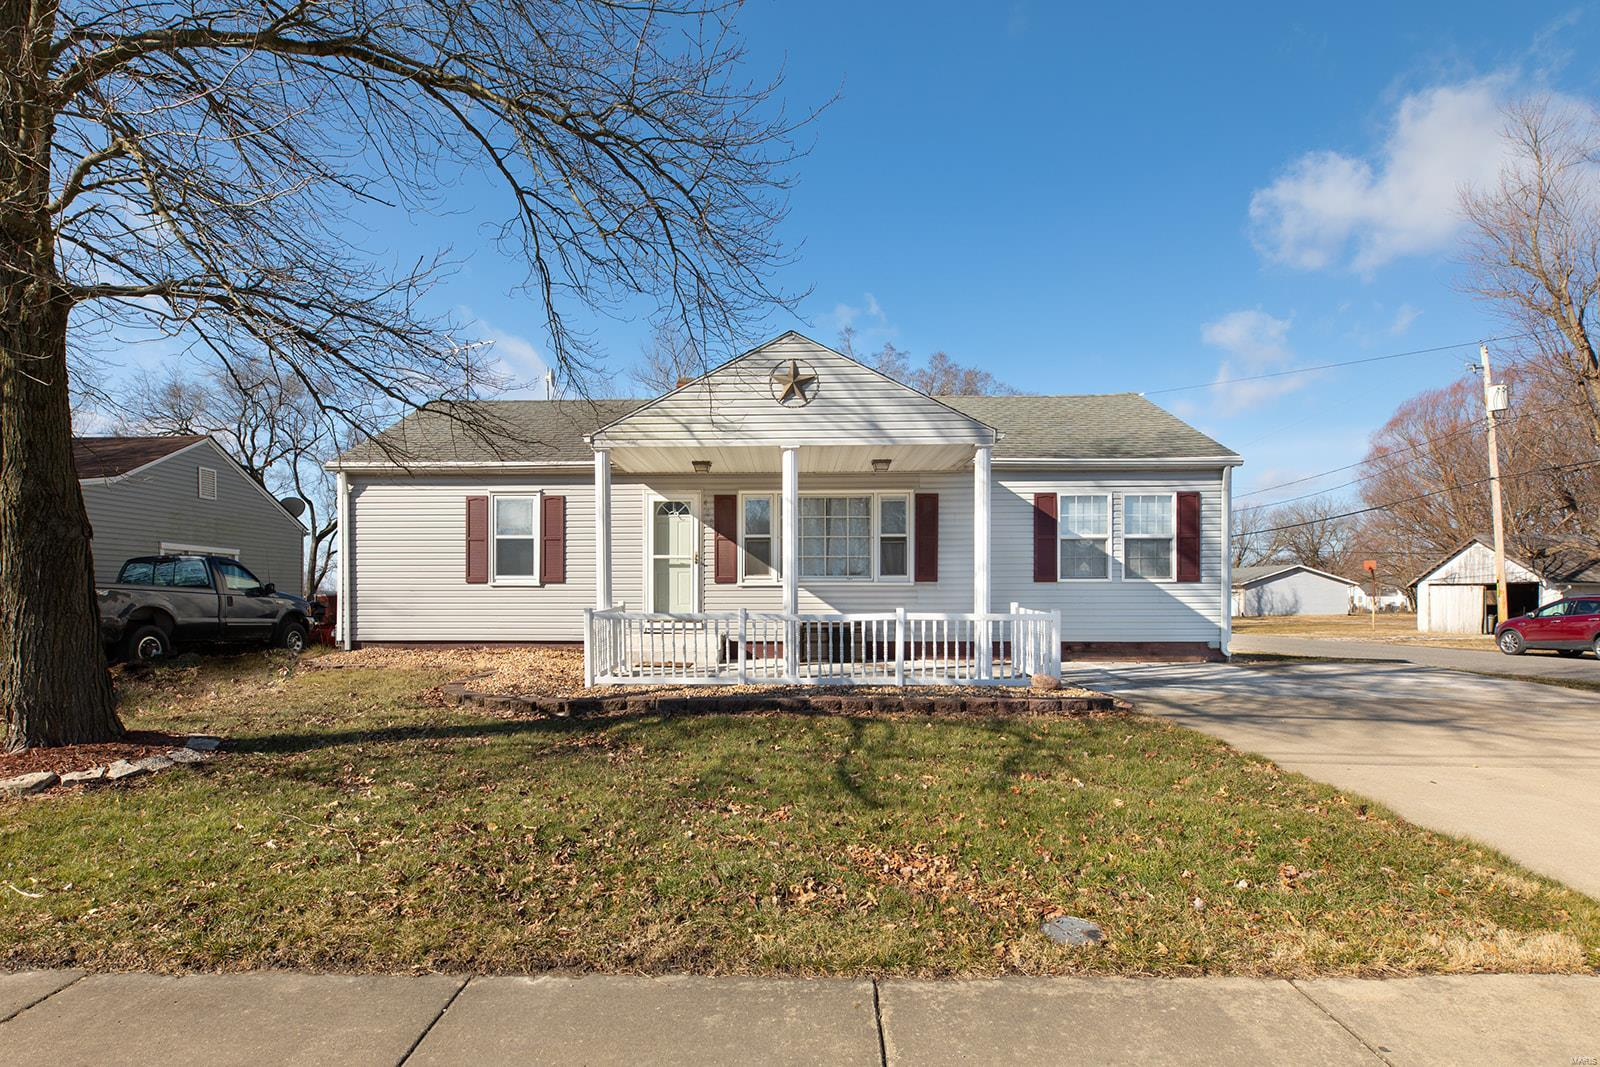 400 S Clinton Property Photo - Bunker Hill, IL real estate listing